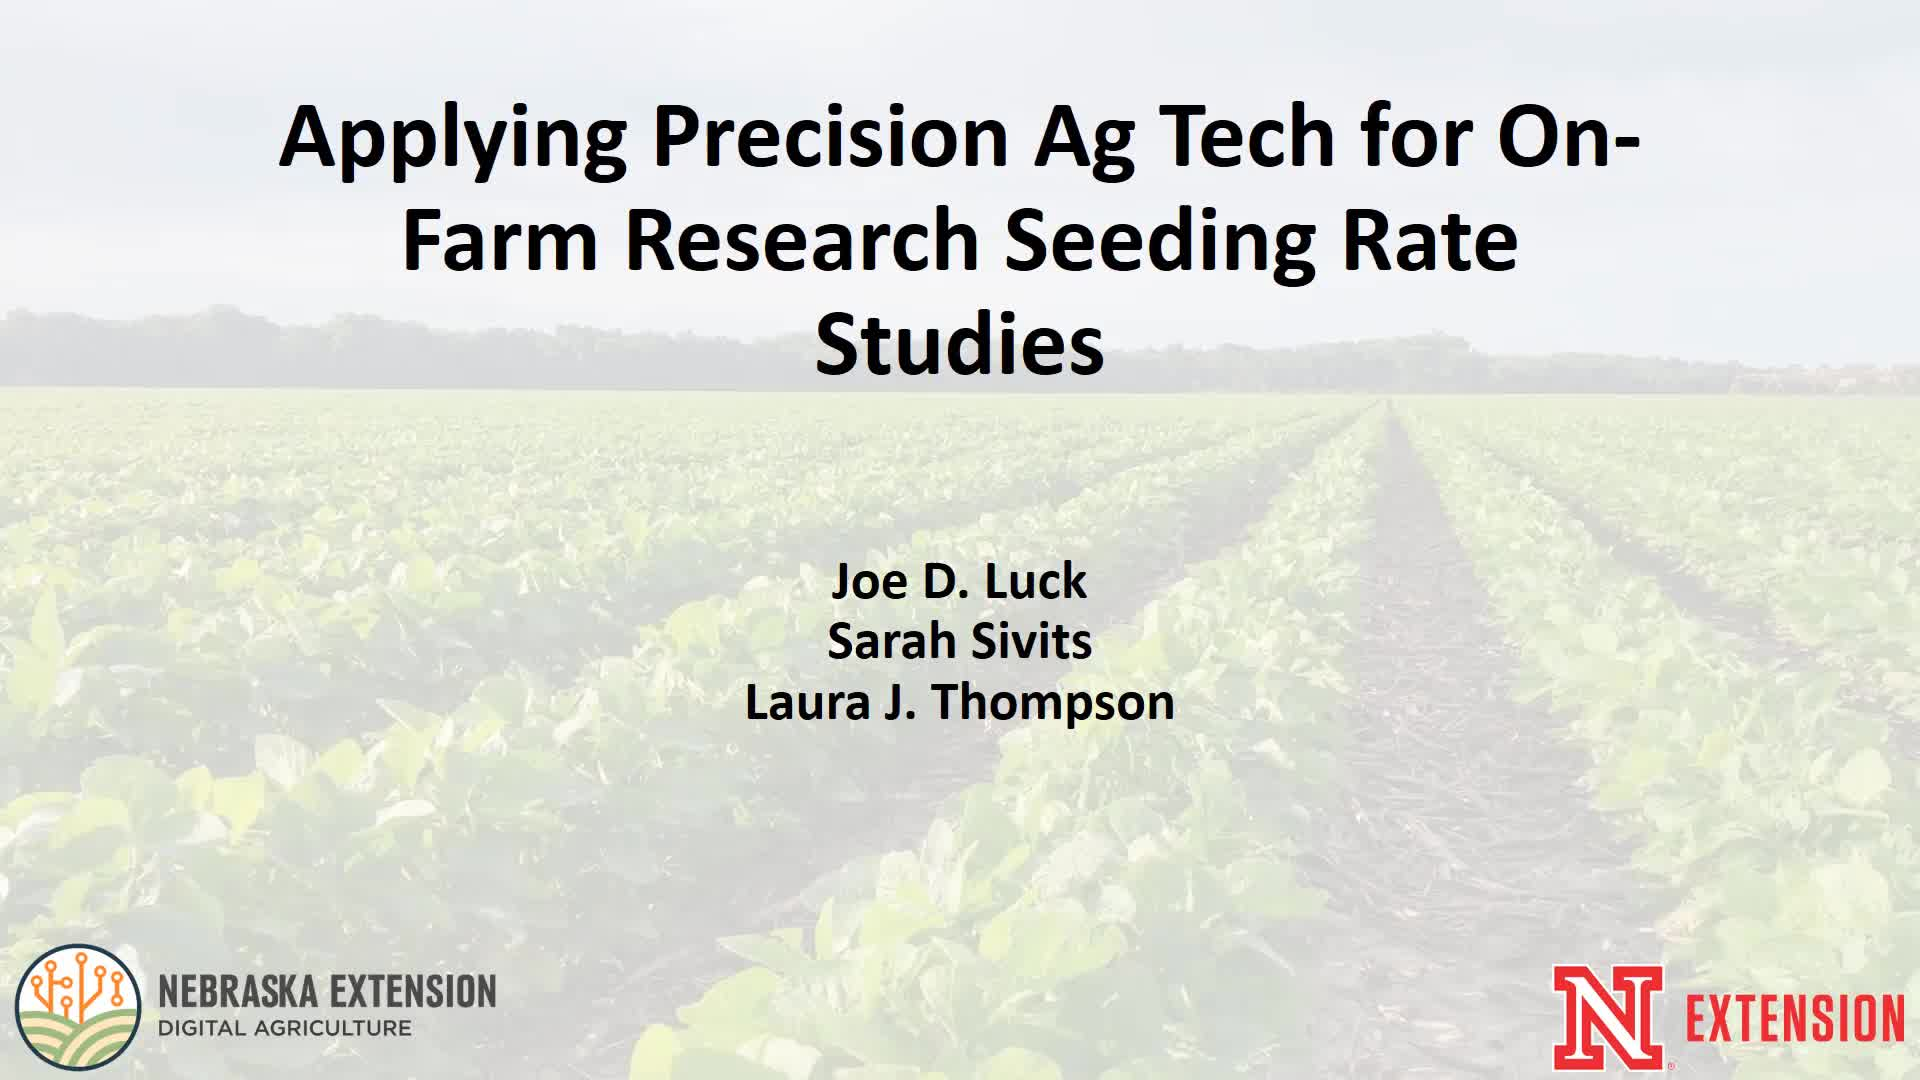 Applying Precision Ag Technologies to enable Variable Rate Soybean Population Studies in Nebraska